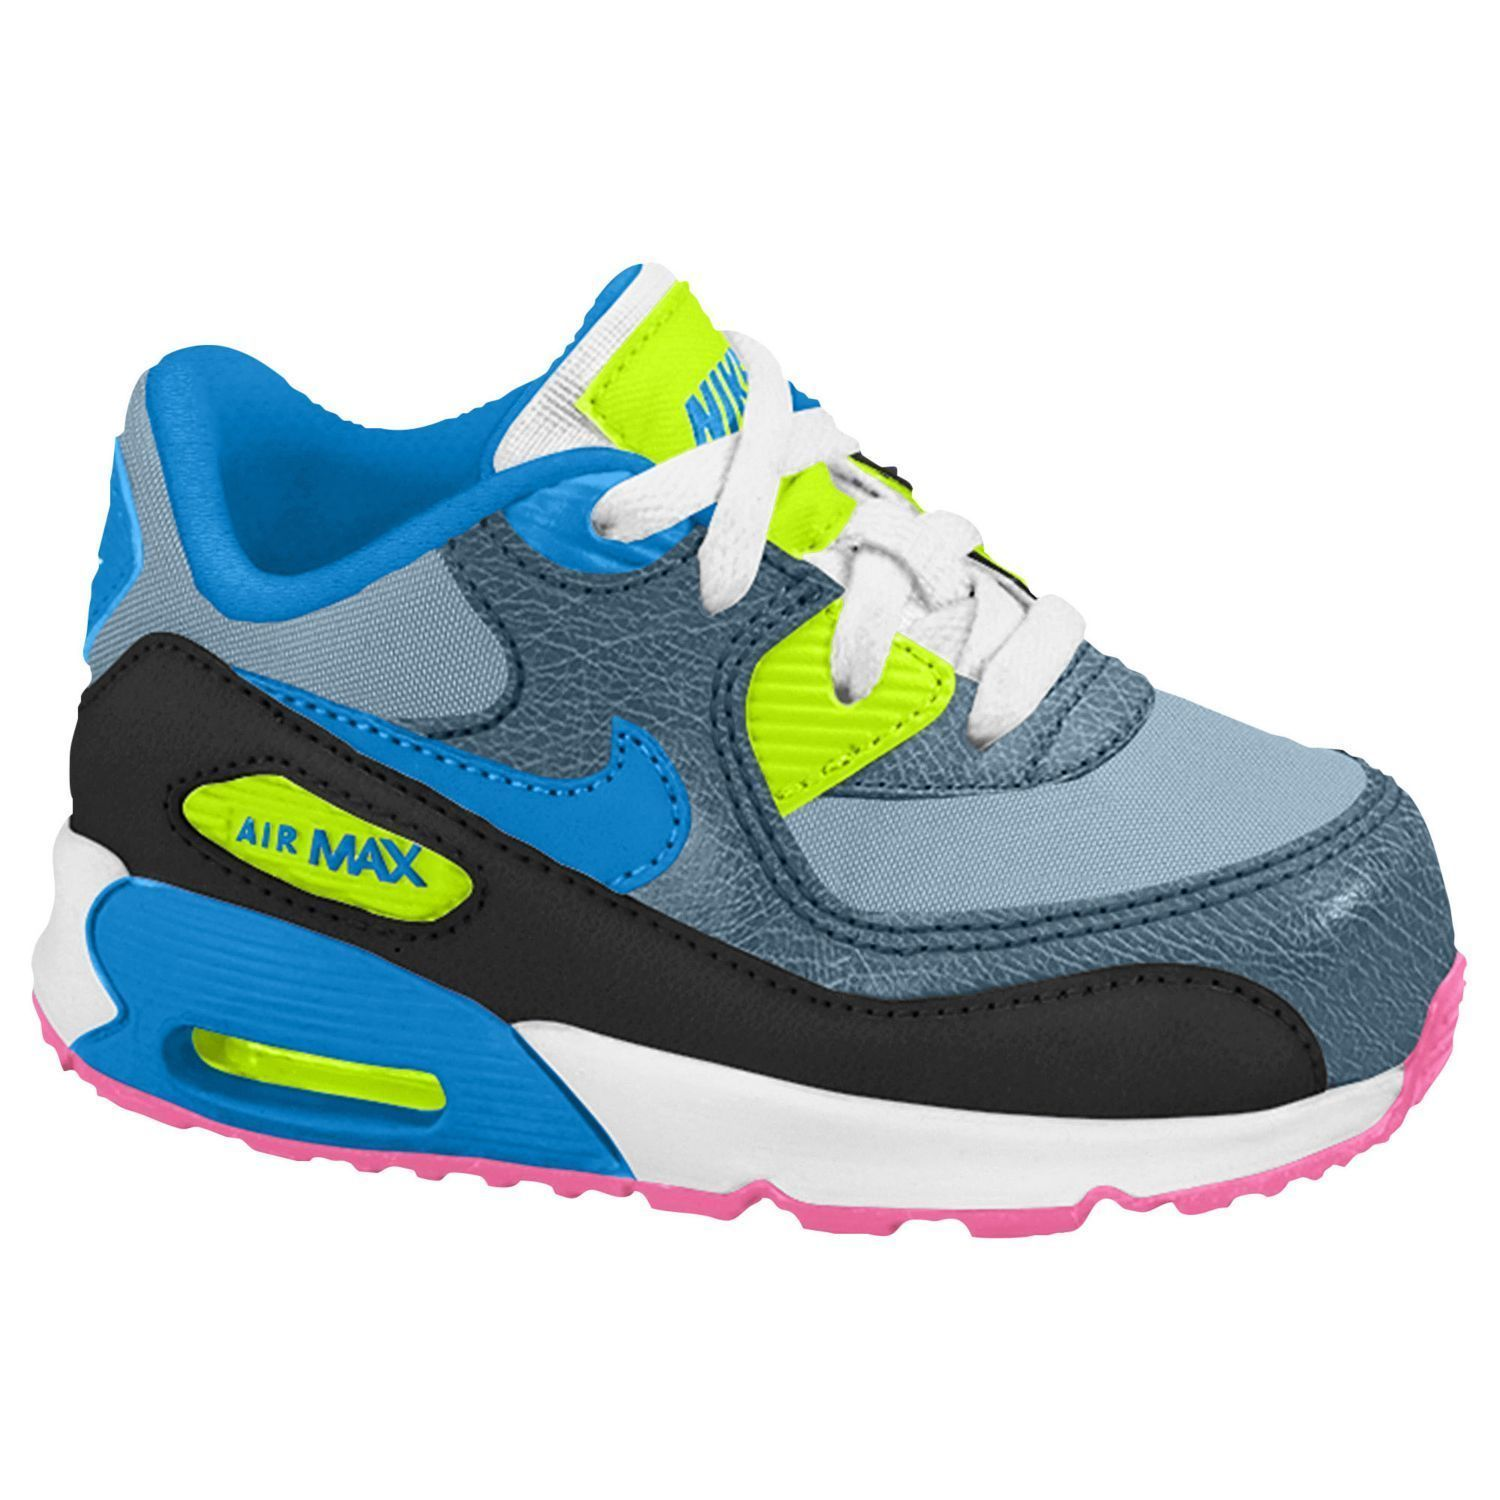 546f0044a1bf5 Baby boys nike air max 90 running shoes toddler size 4 nib